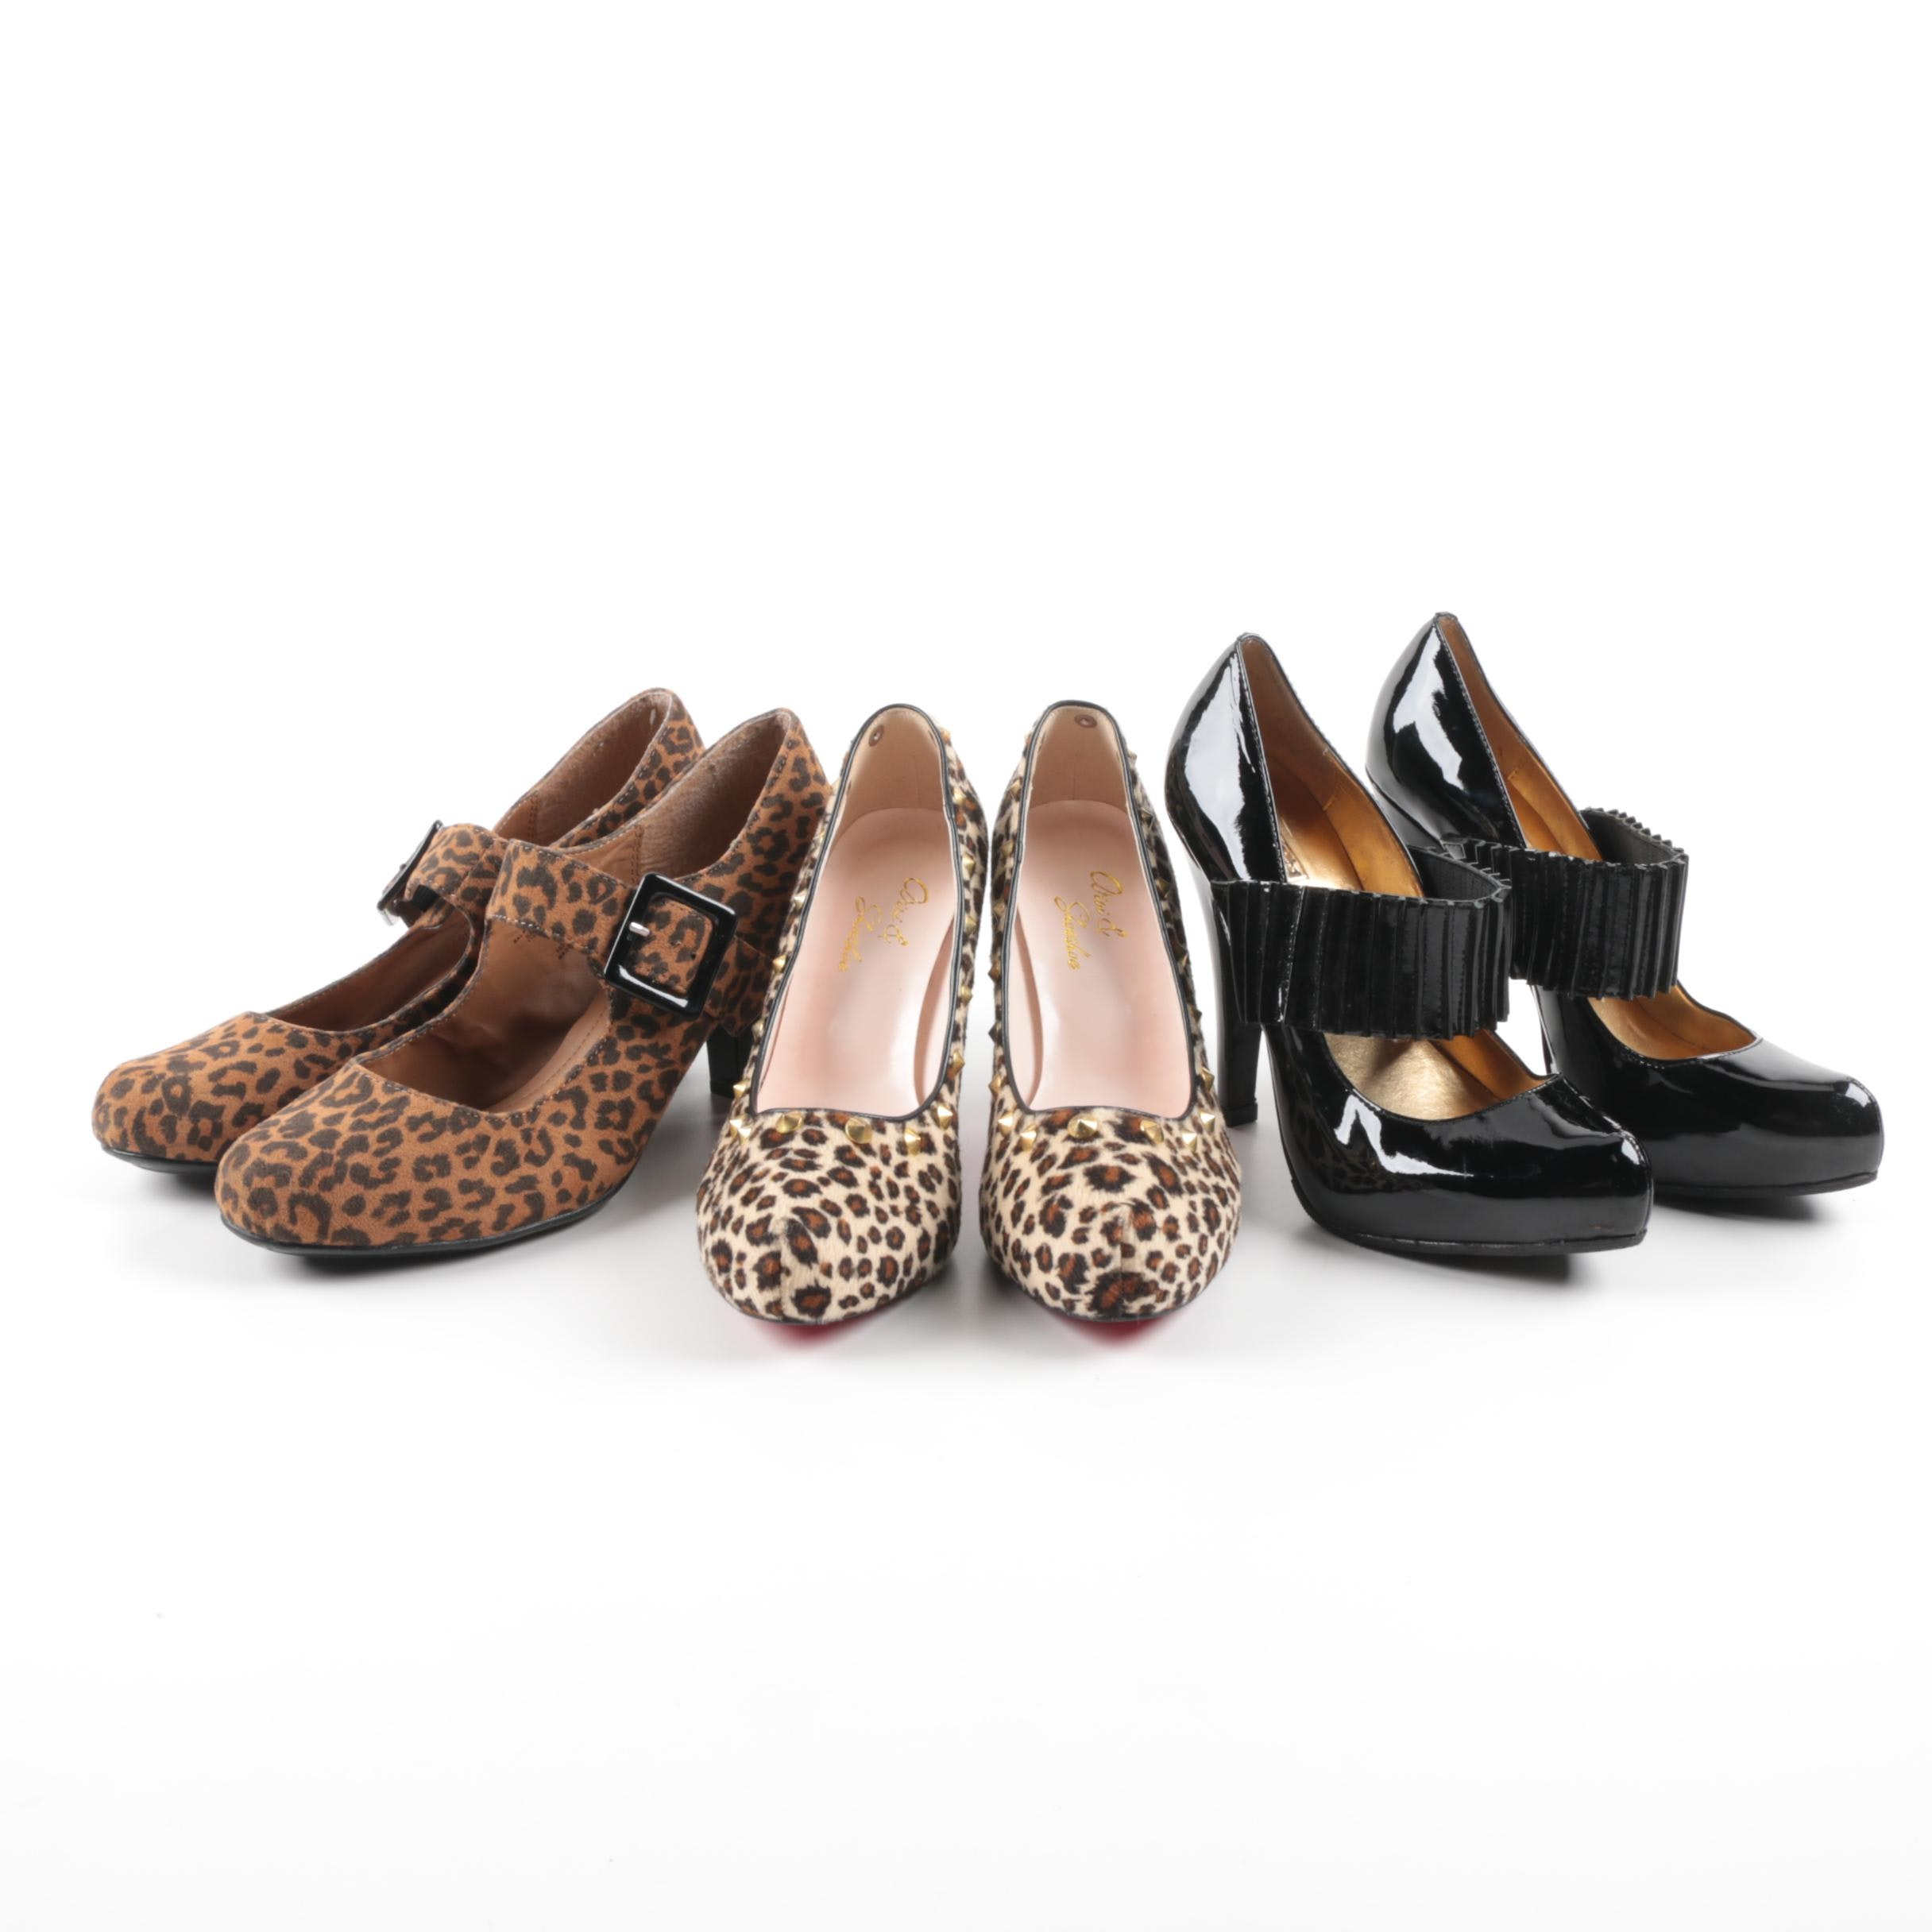 Women's Shoes Including Jaclyn Smith